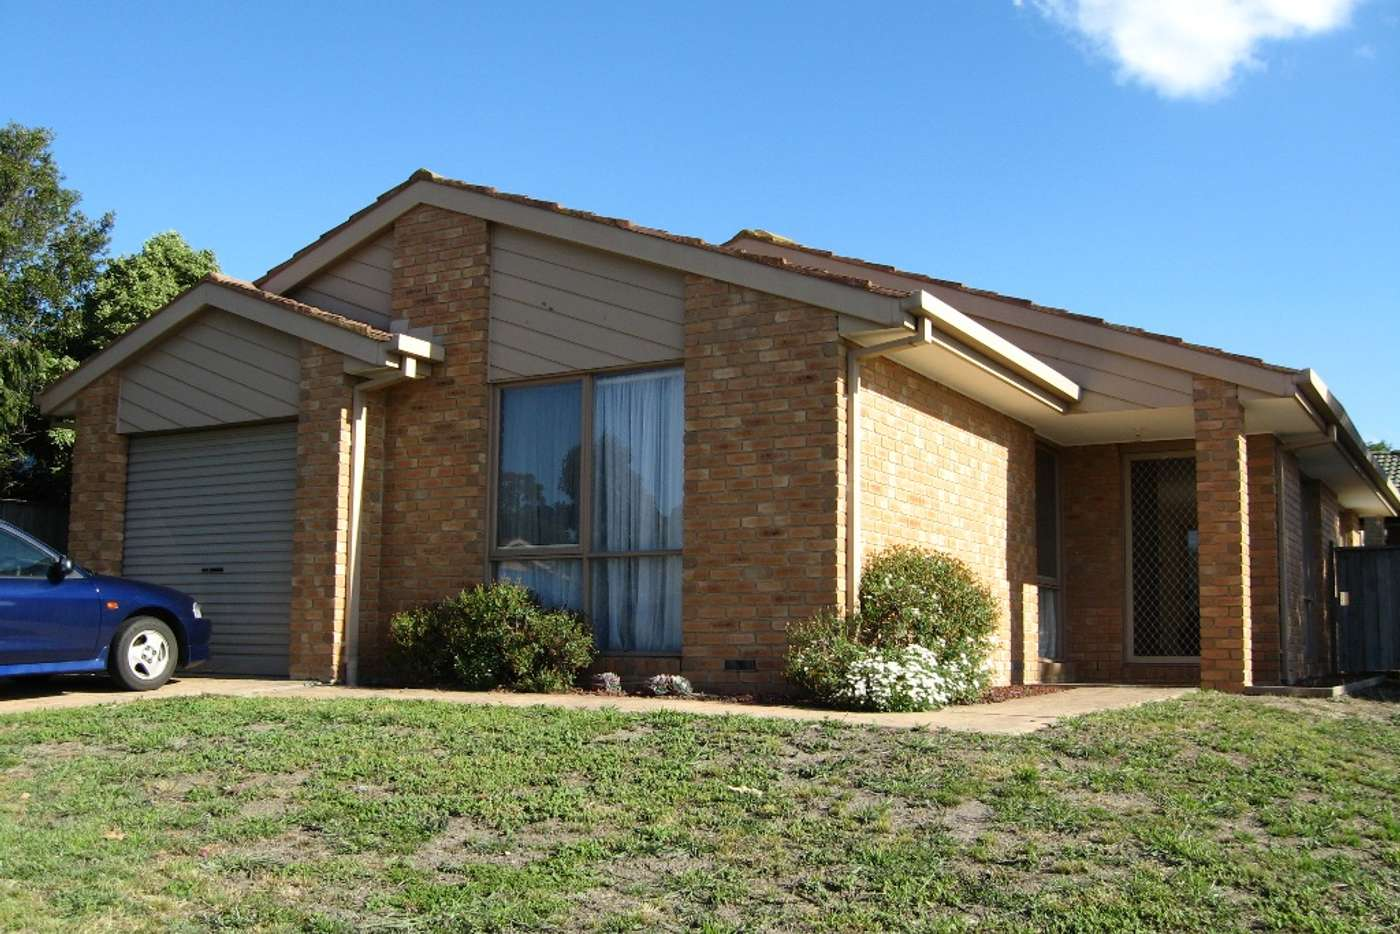 Main view of Homely house listing, 53 Norfolk Drive, Narre Warren VIC 3805